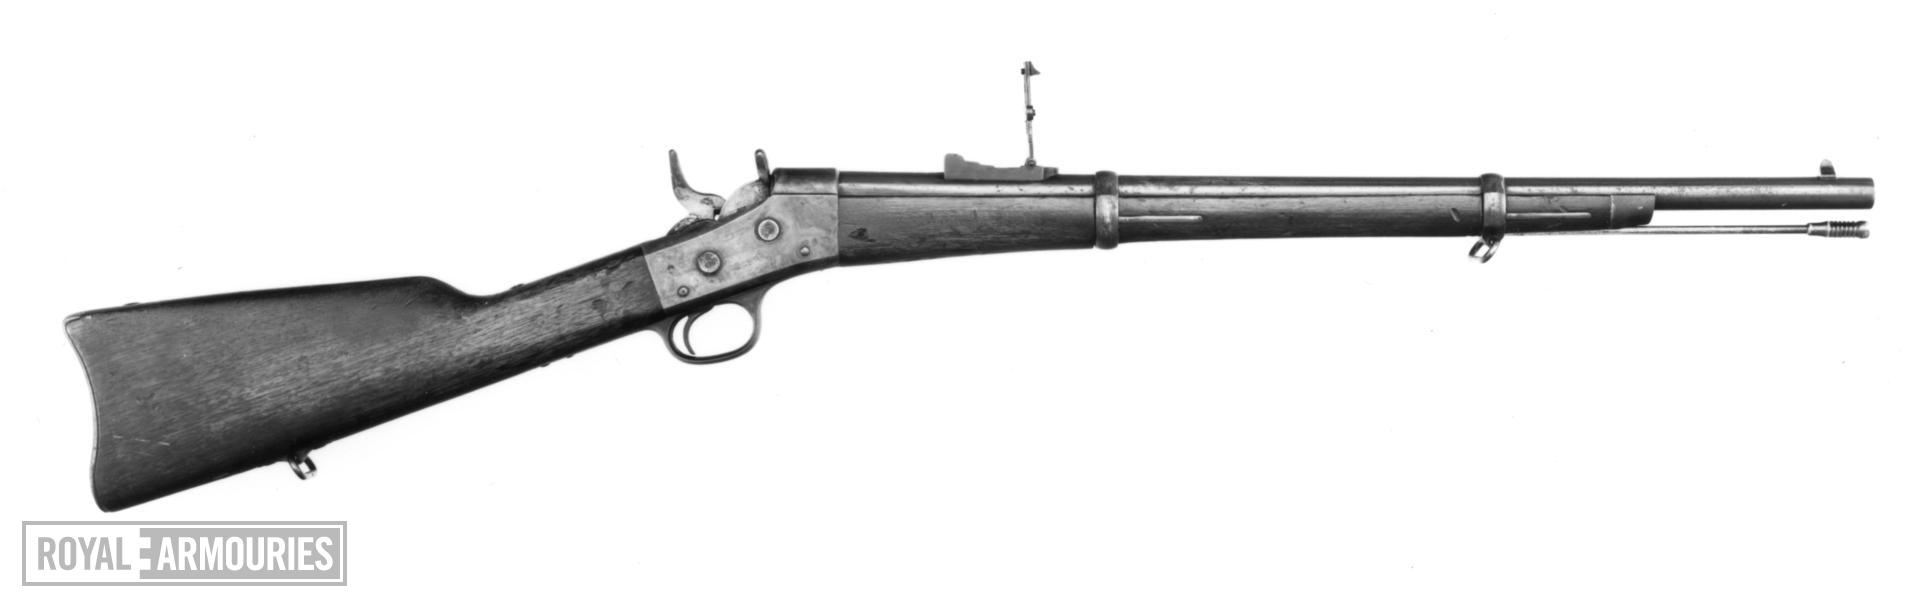 Centrefire breech-loading carbine - Remington Carbine